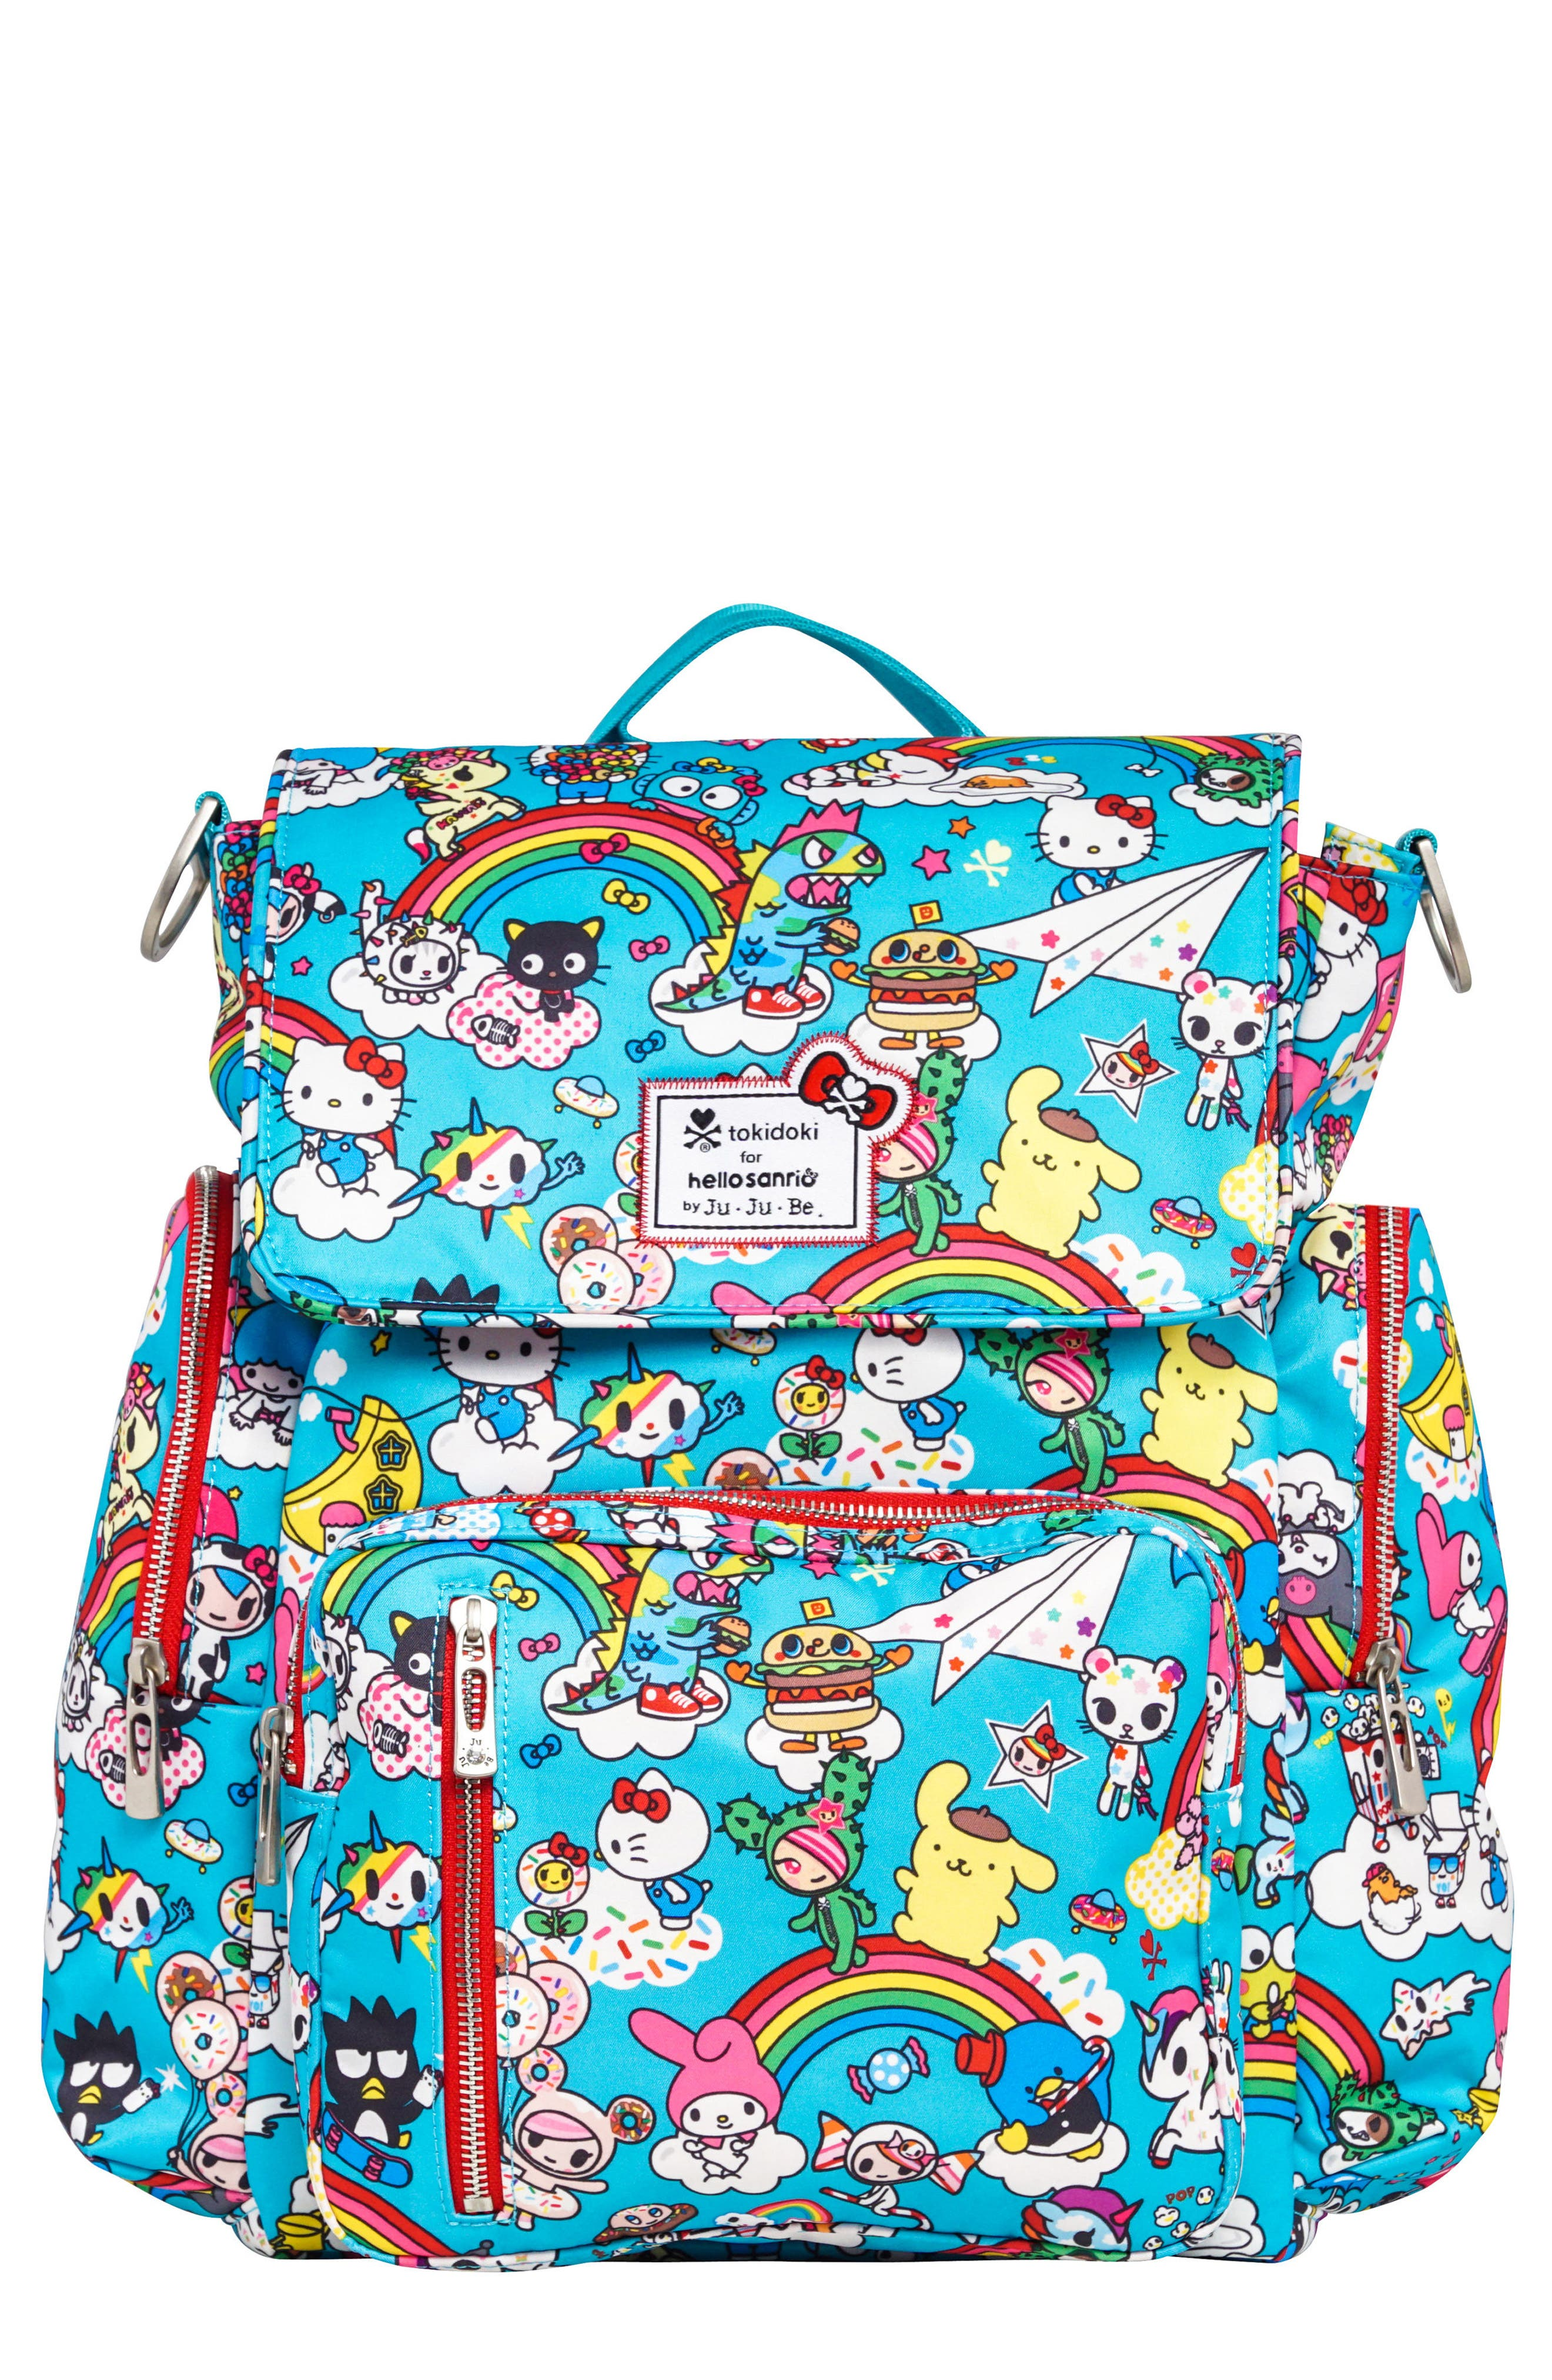 Ju-Ju-Be x tokidoki for Hello Sanrio Rainbow Dreams Sporty Diaper Backpack